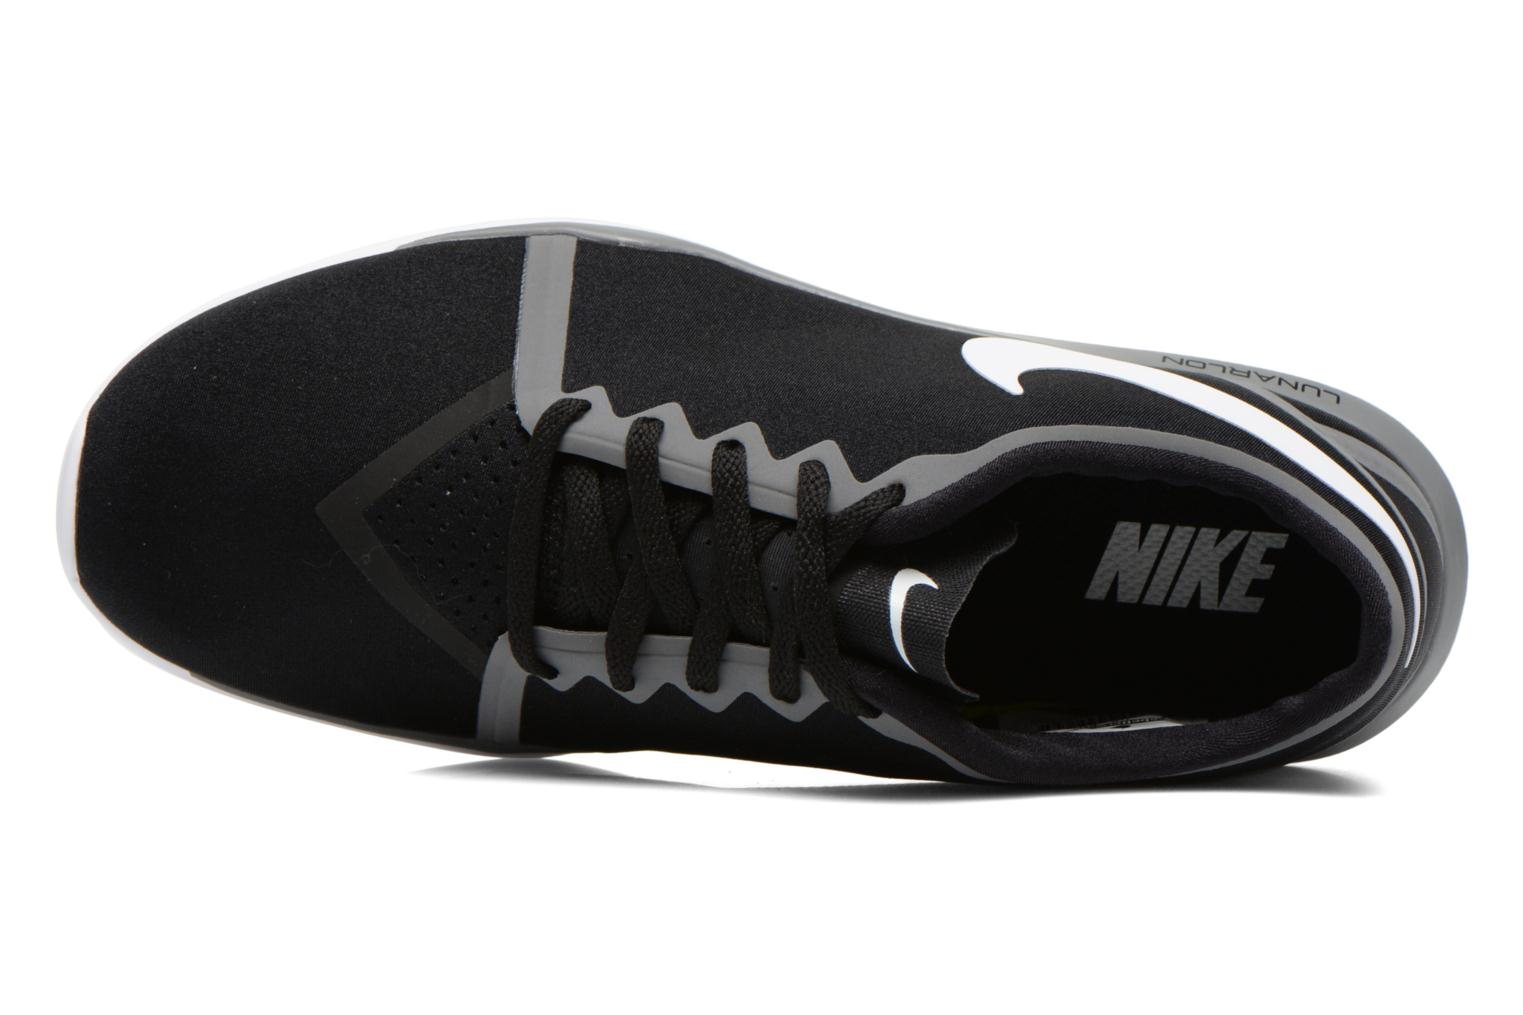 Wmns Nike Lunar Sculpt Black/White-Cool Grey